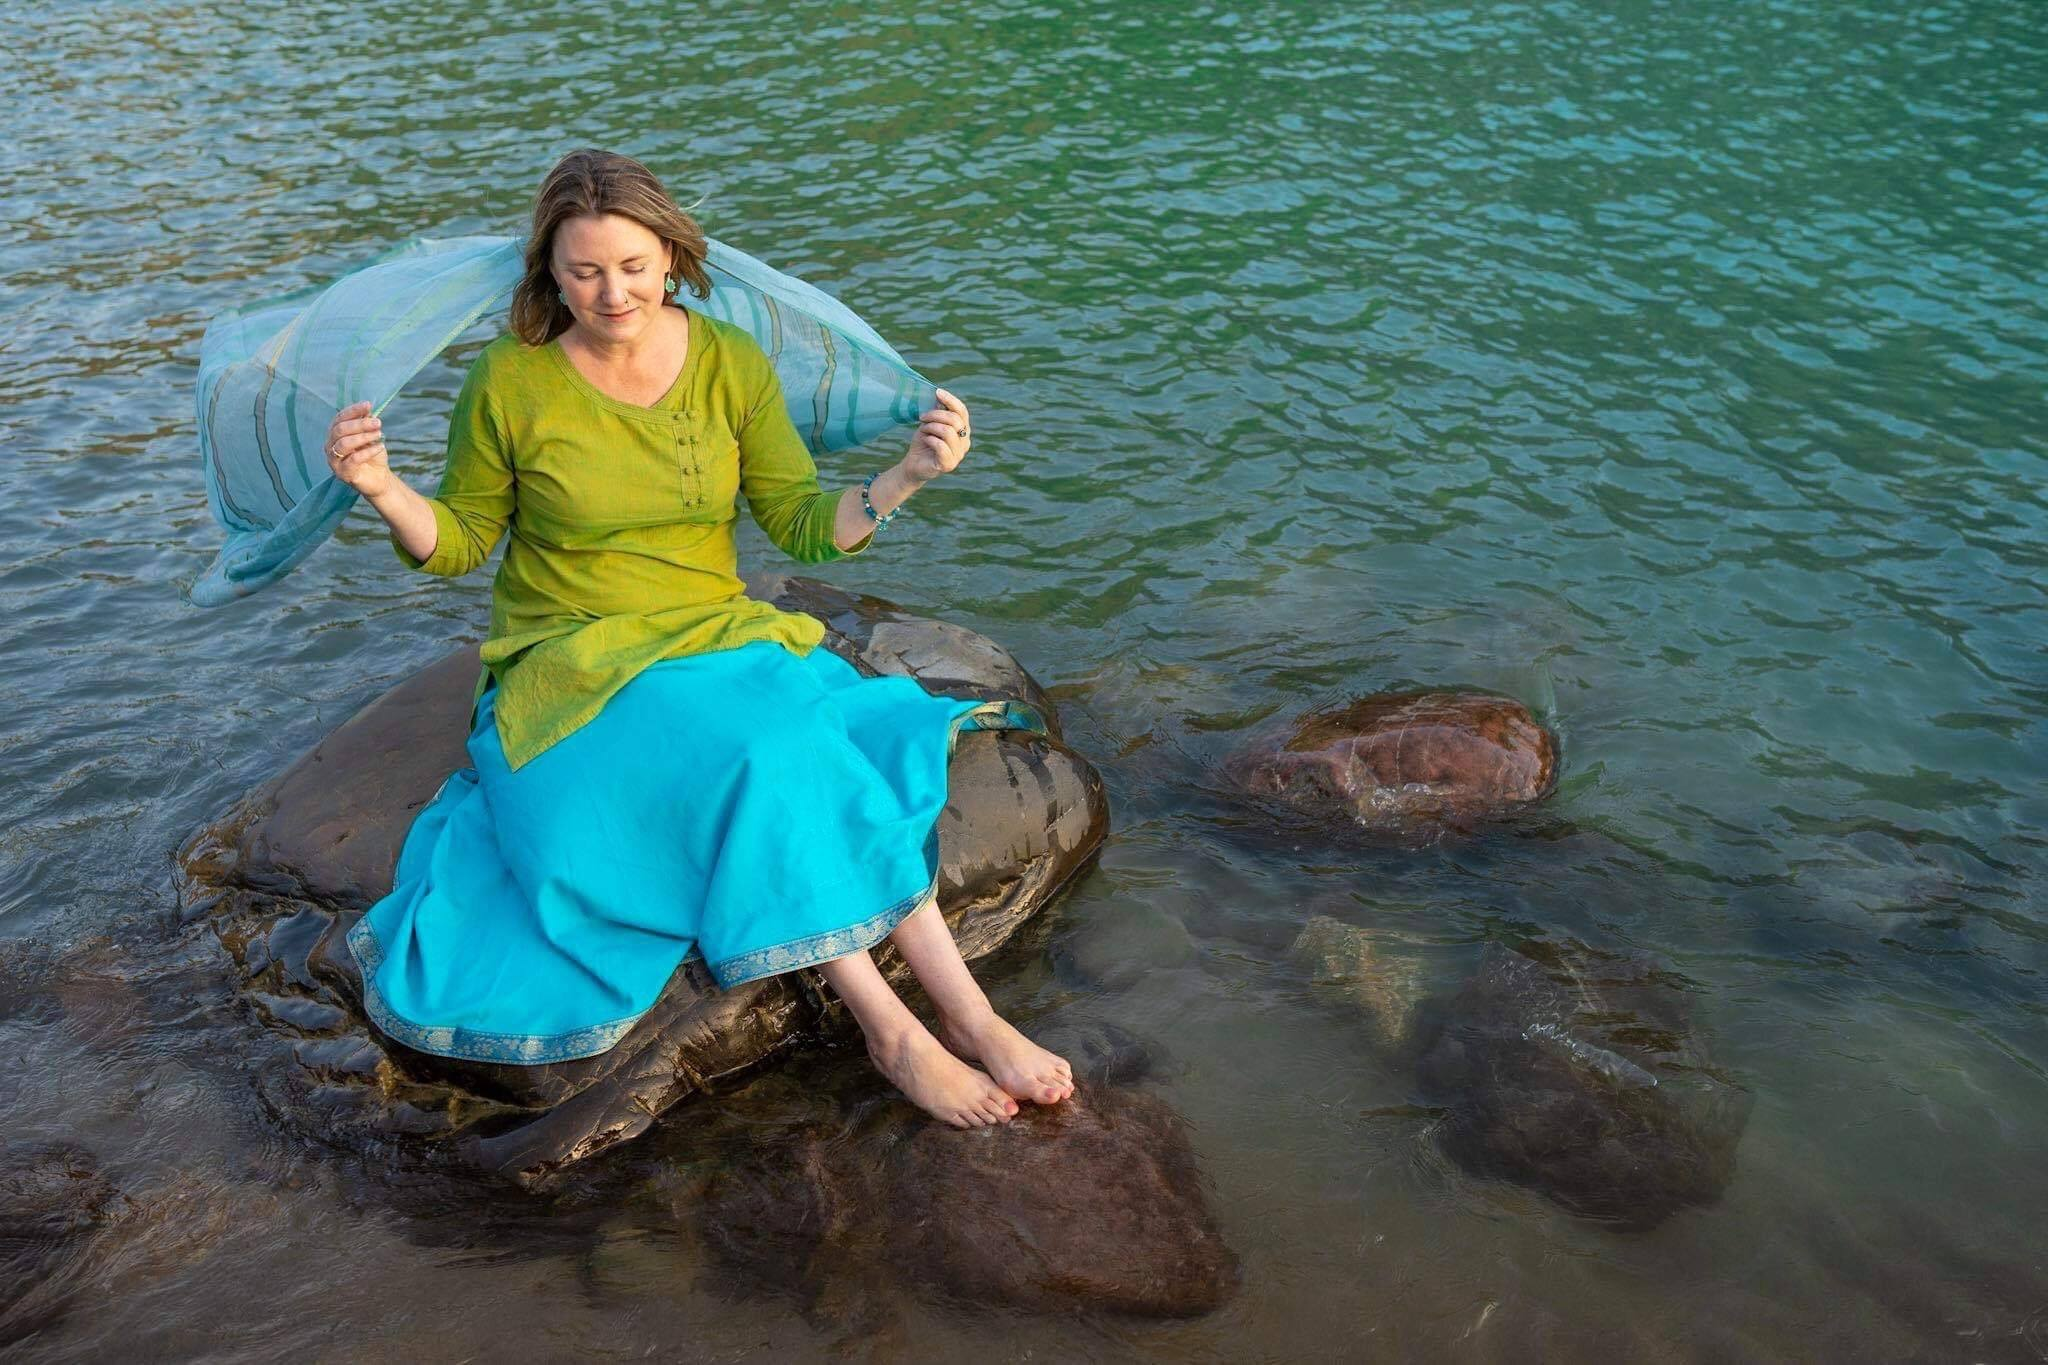 Mariellen Ward in a green and blue dress holding a blue shawl behind her, sitting on a rock in the Ganga river.